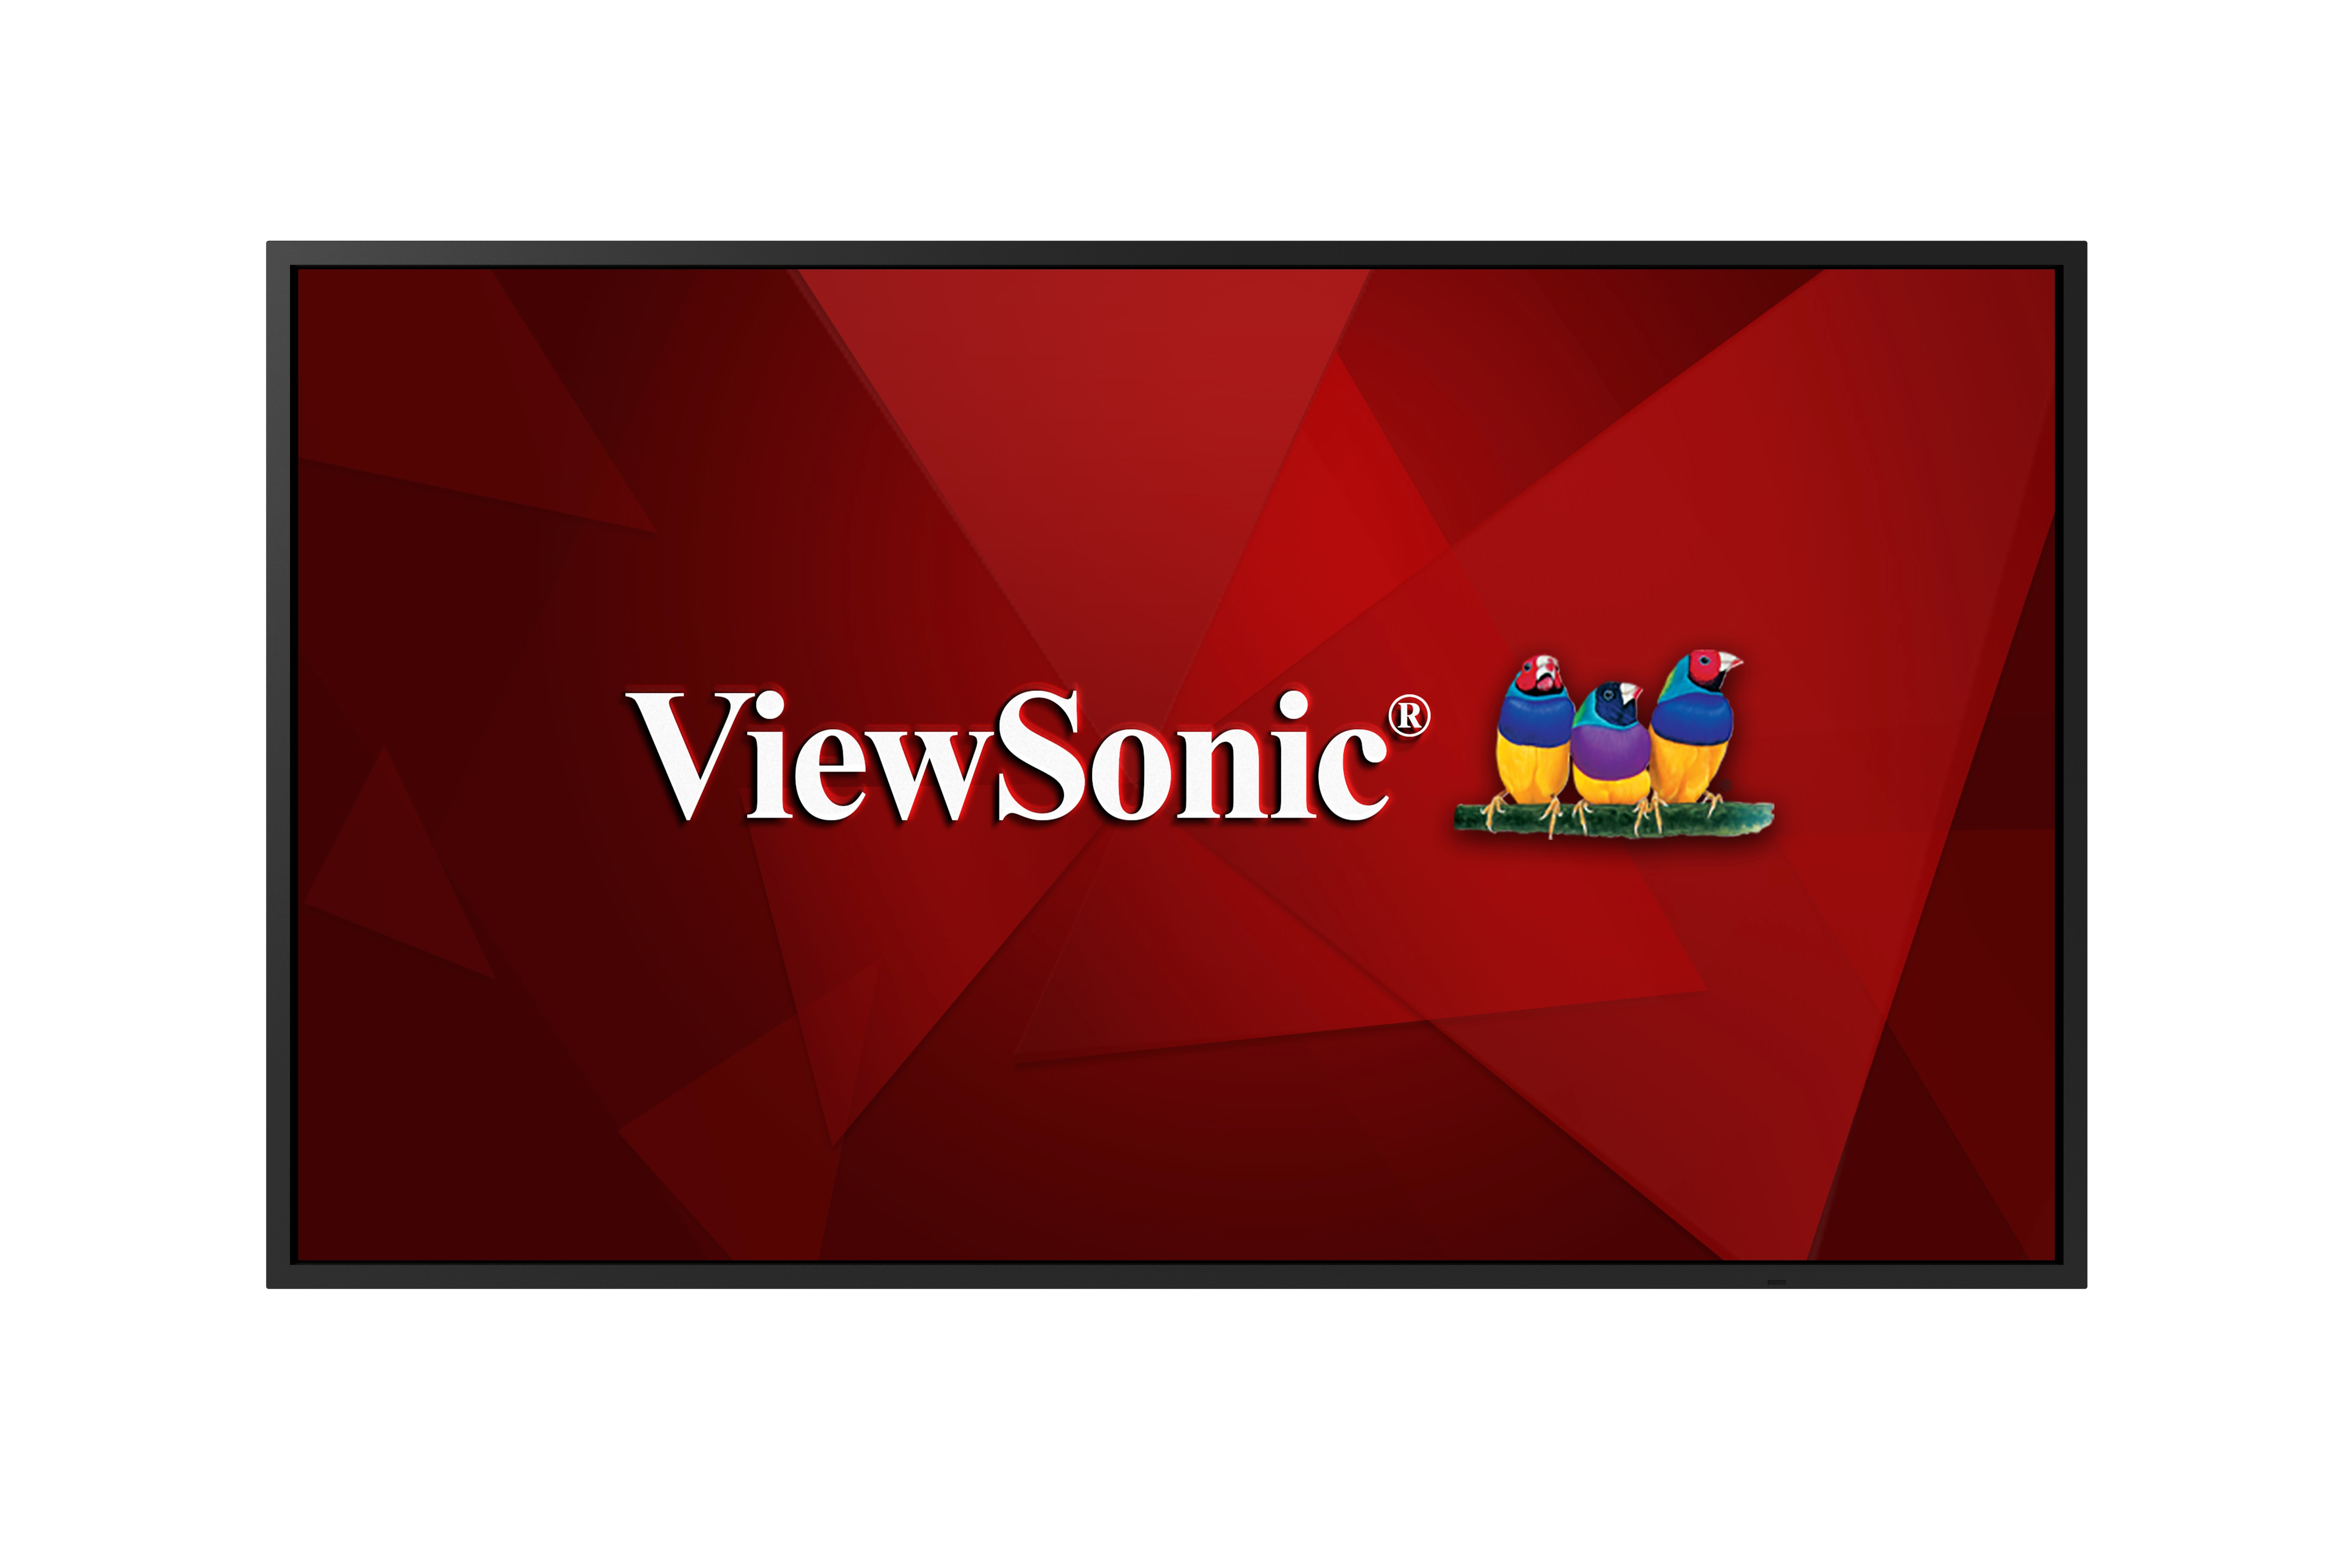 ViewSonic CDE4320 109,22cm 43Zoll LED commerical display 3840x2160 350nits 1100:1 6ms RT 178/178 10Wx2 build in Speakers HDMIx2 DVI